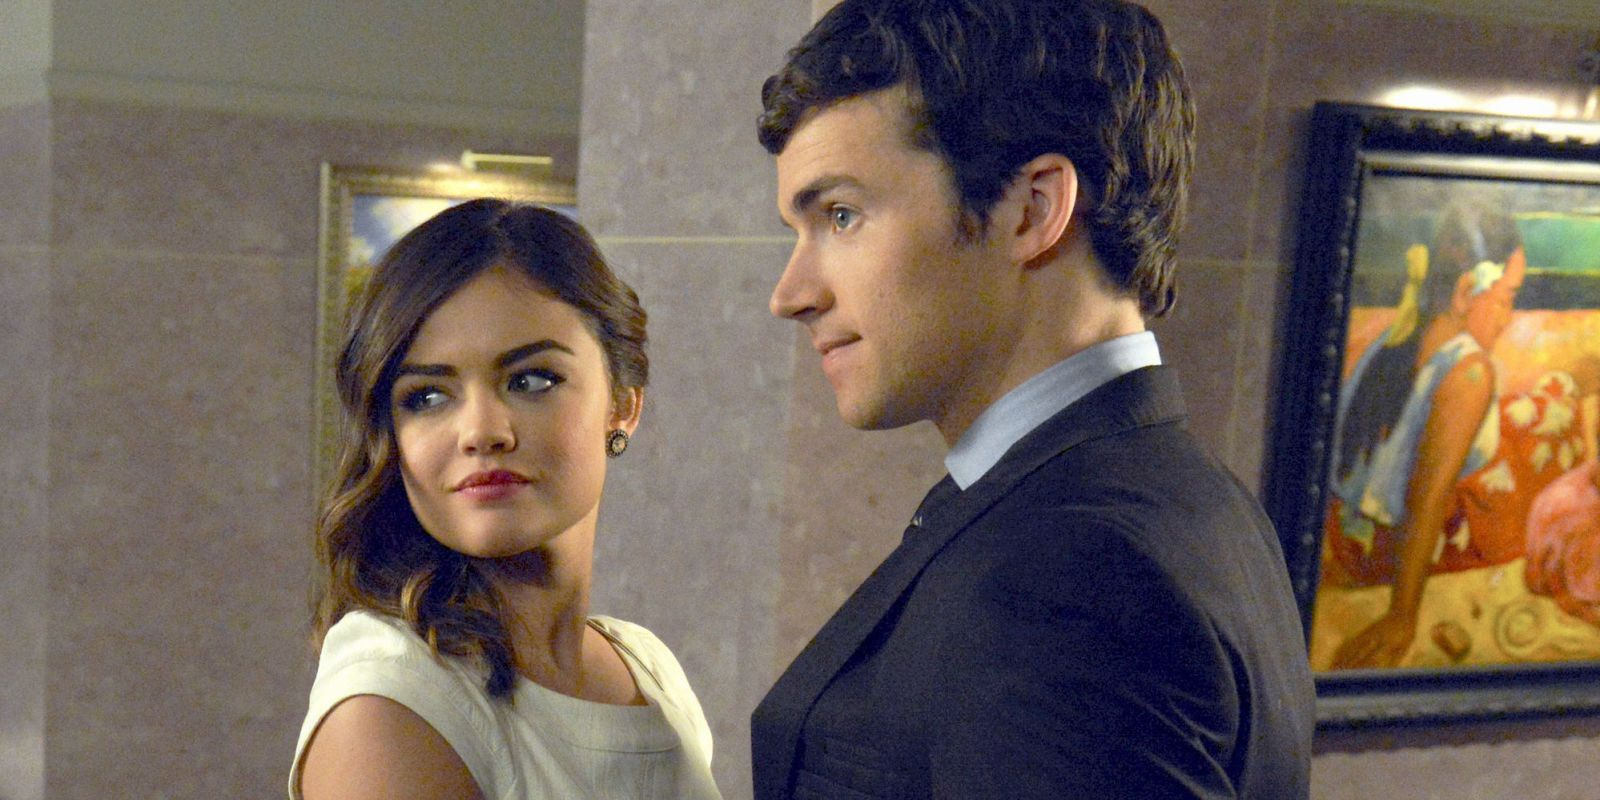 Is Ezra Hookup Aria In Real Life